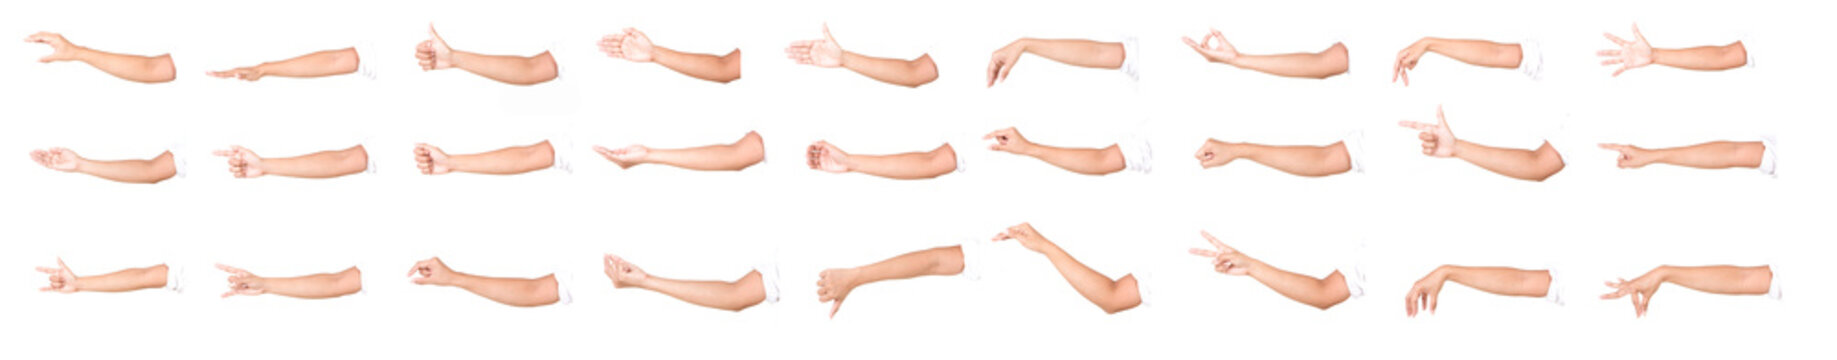 Multiple female caucasian hand gestures isolated over the white background, set of multiple images